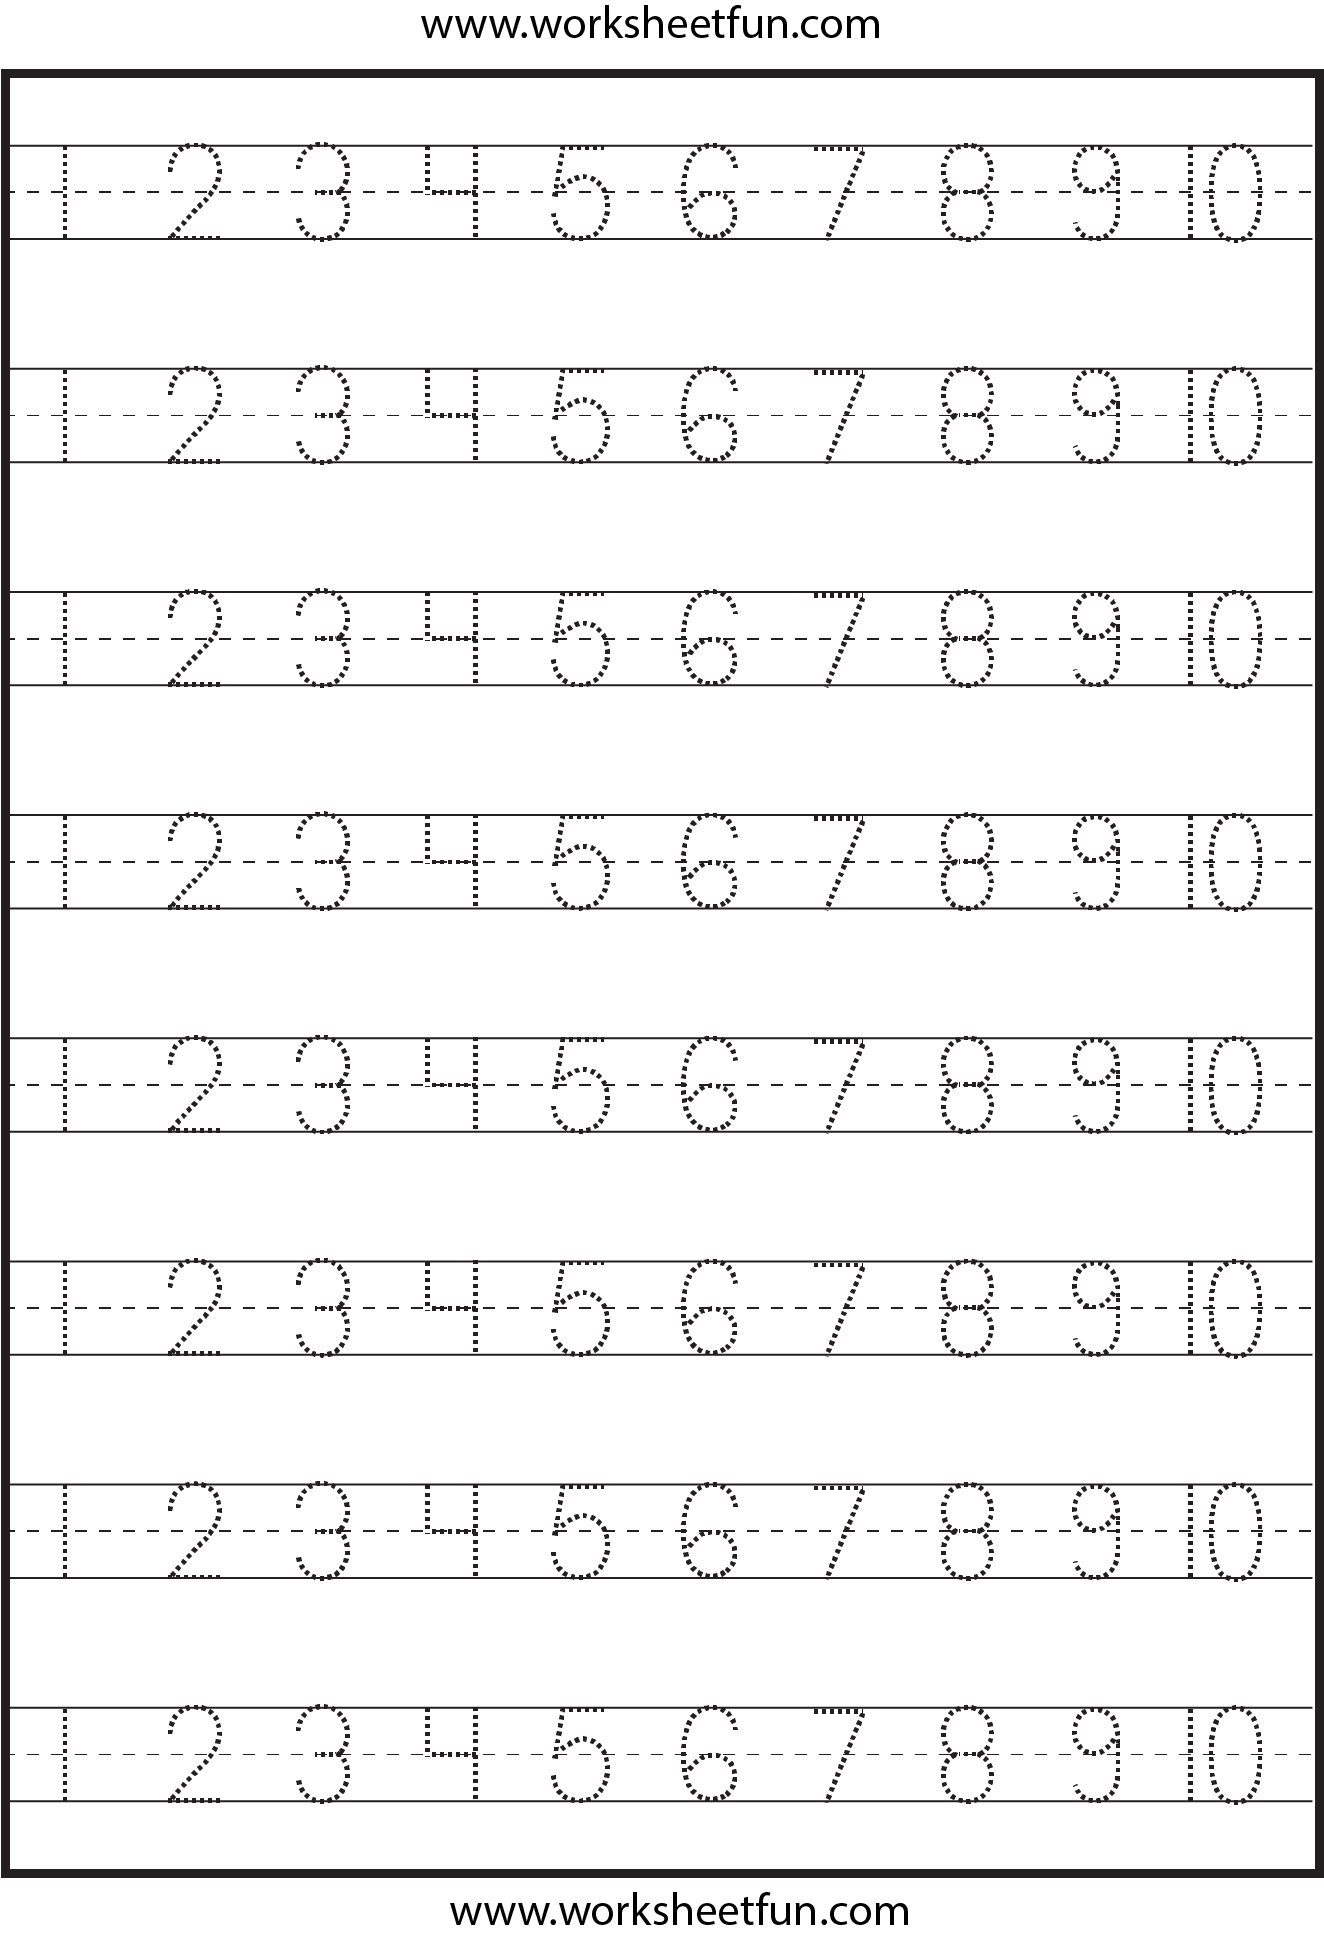 Worksheets Number Tracing Worksheets number tracing 1 10 worksheet free printable worksheets tracing